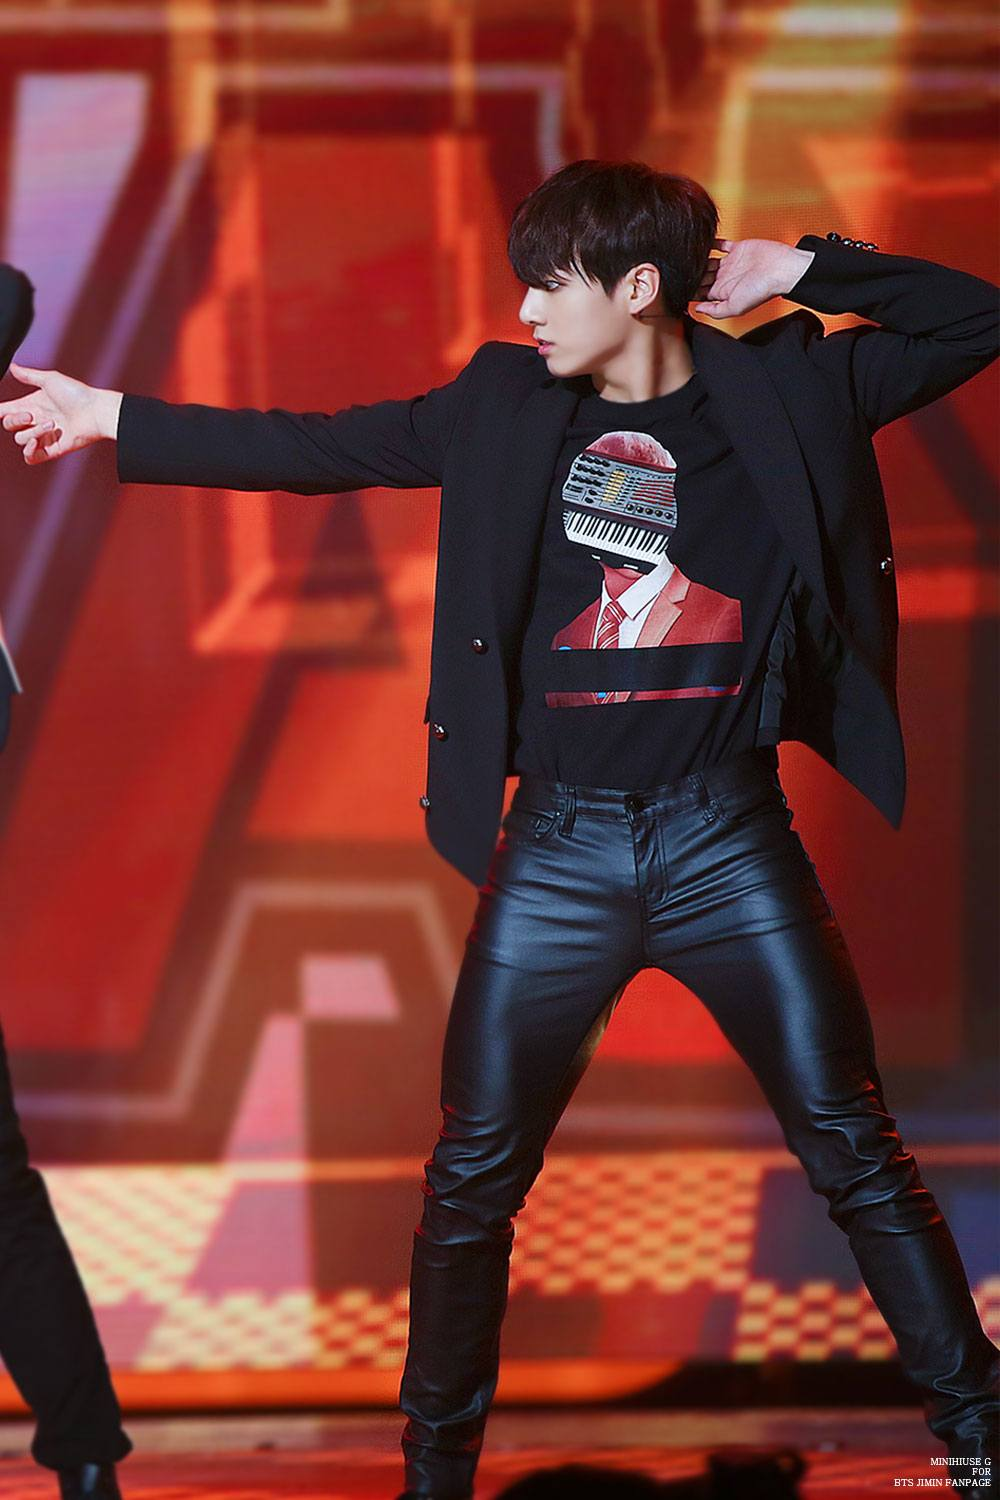 Jungkook strikes a pose in his leather pants.